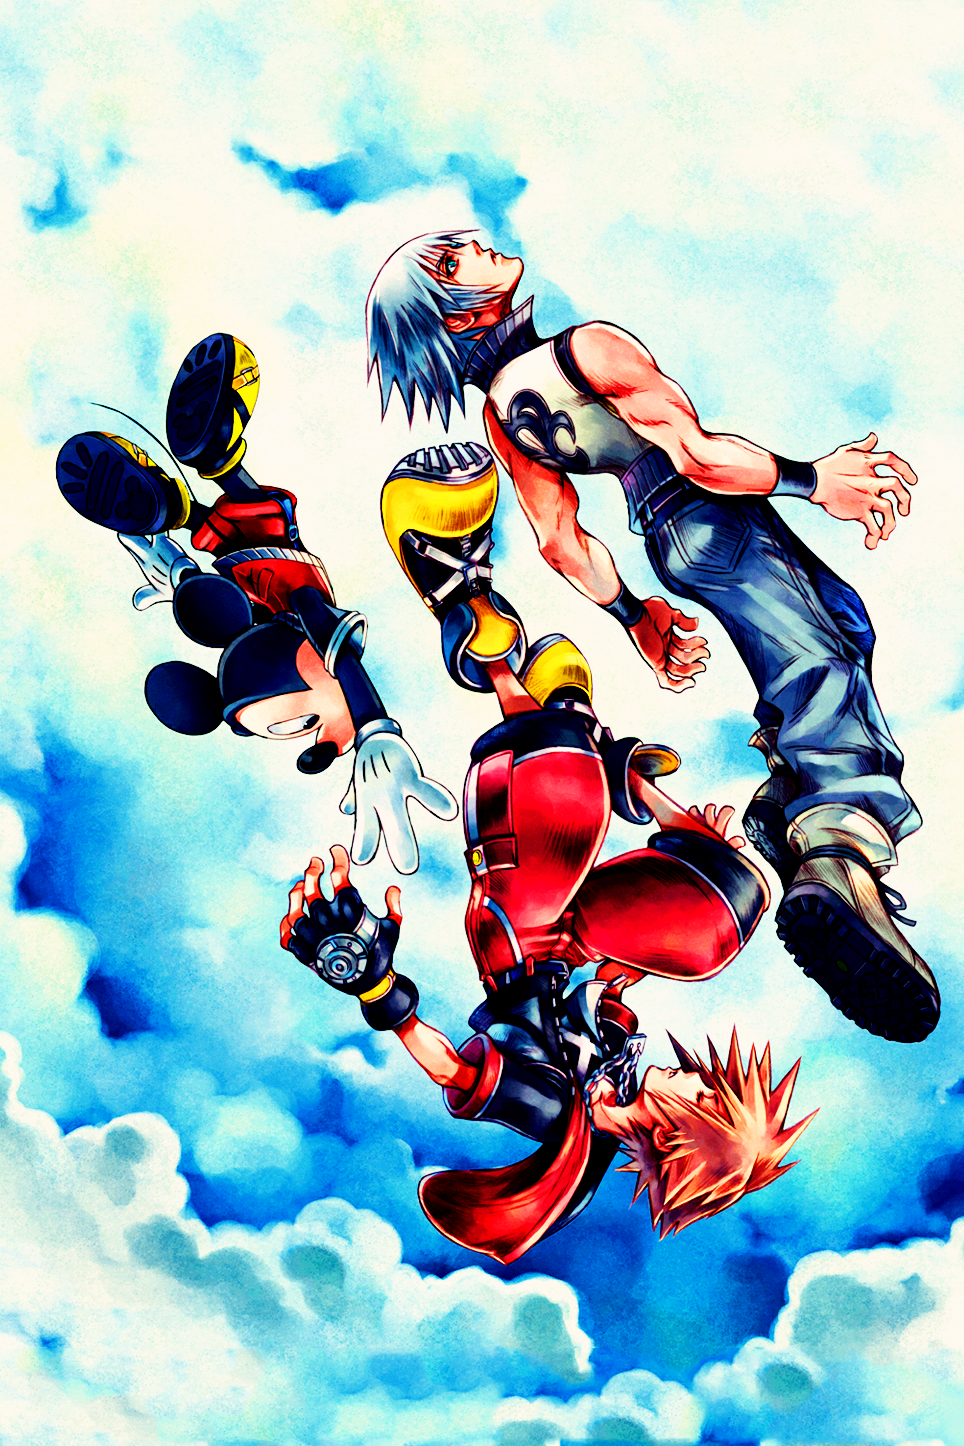 Iphone wallpapers kingdom hearts insider iphone wallpapers voltagebd Images